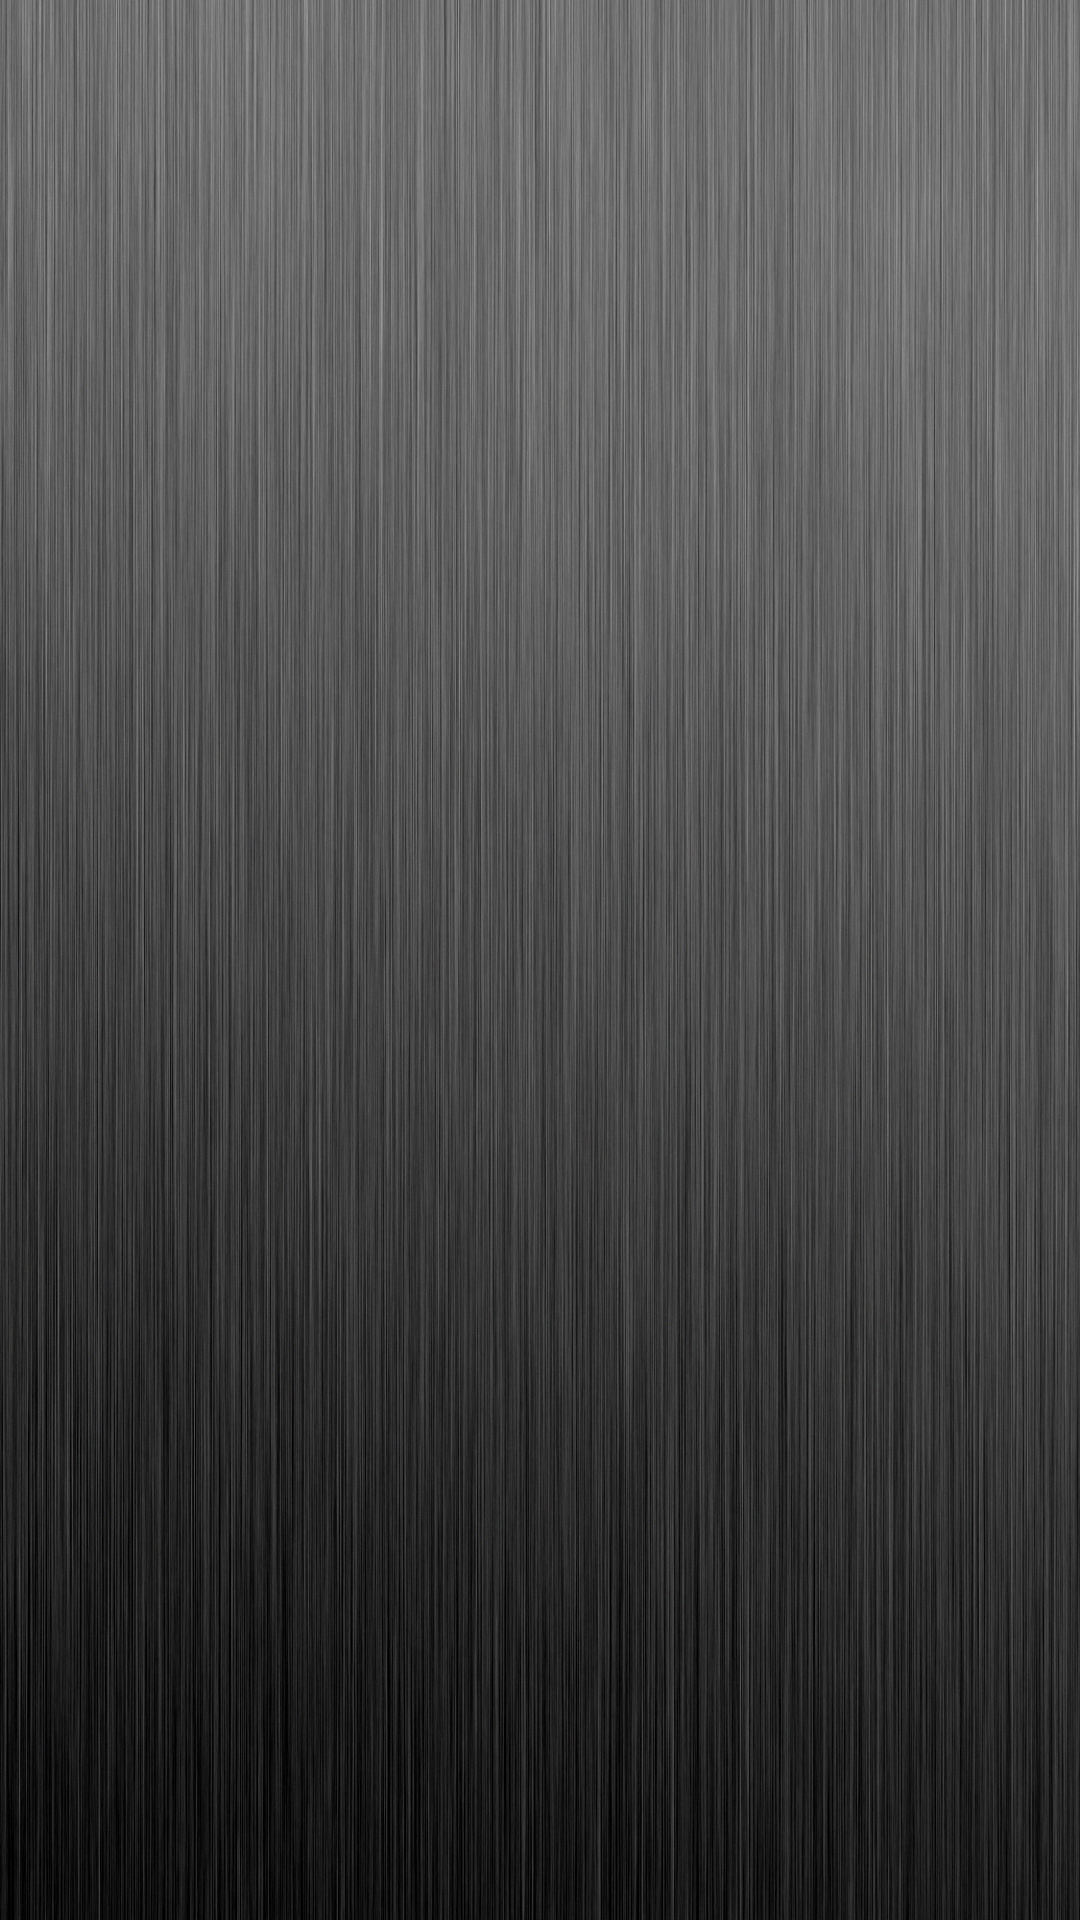 Black White And Silver Striped Wallpaper Dark Metal Texture Best Htc One Wallpapers Free And